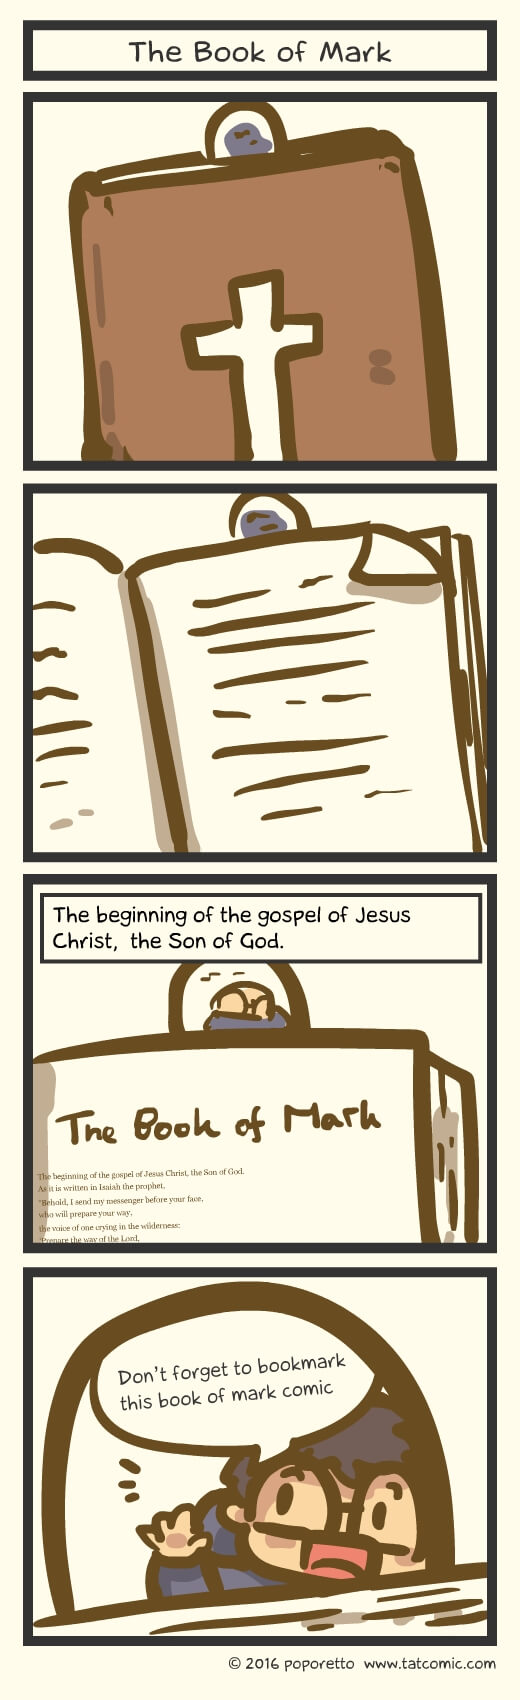 The Book of Mark – Introduction